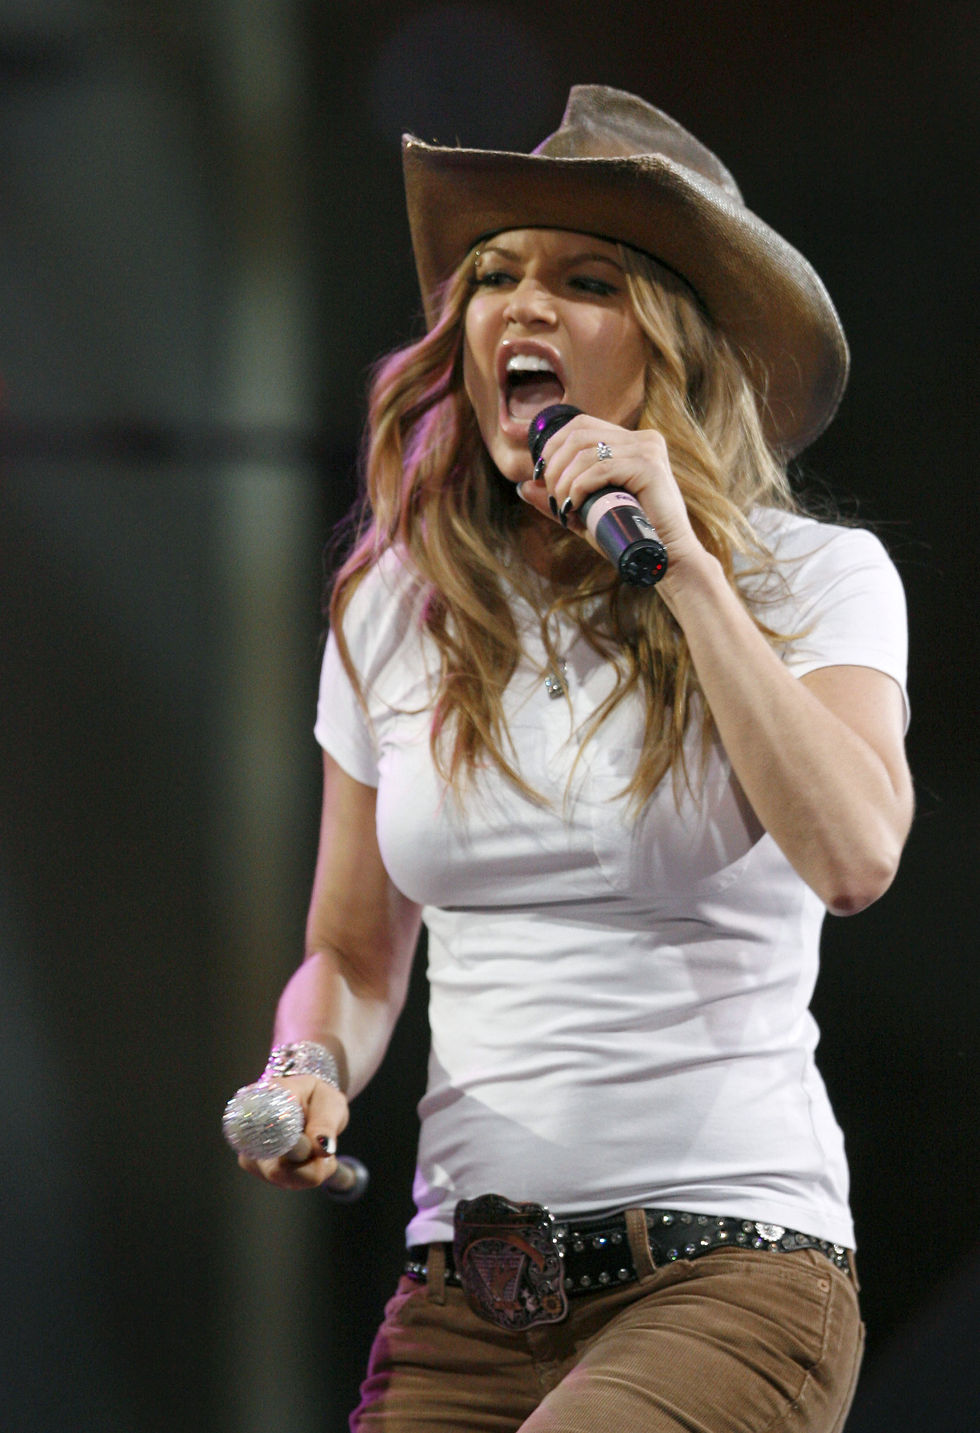 fergie-performs-at-the-2008-houston-livestock-show-and-rodeo-07